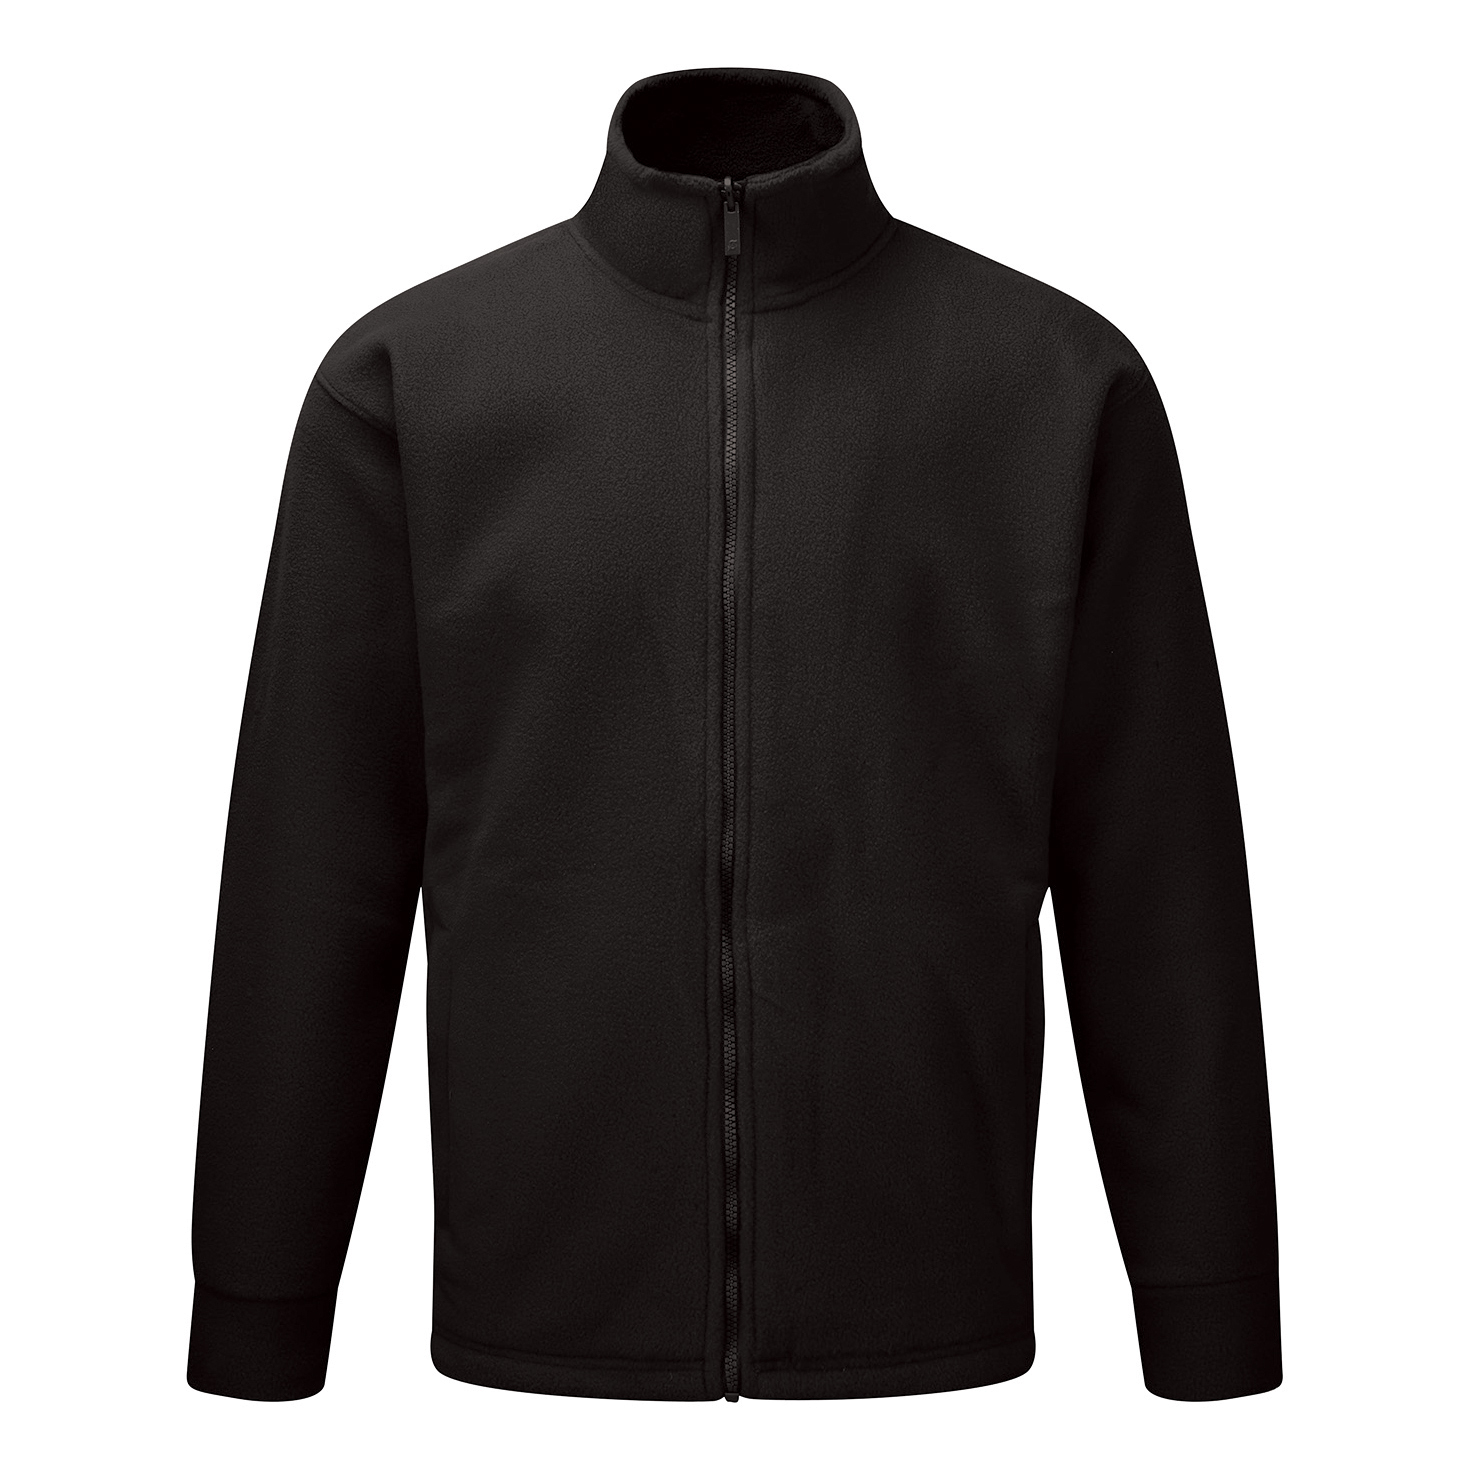 Classic Fleece Jacket Elasticated Cuffs Full Zip Front Large Black Ref FLJBLL 1-3 Days Lead Time